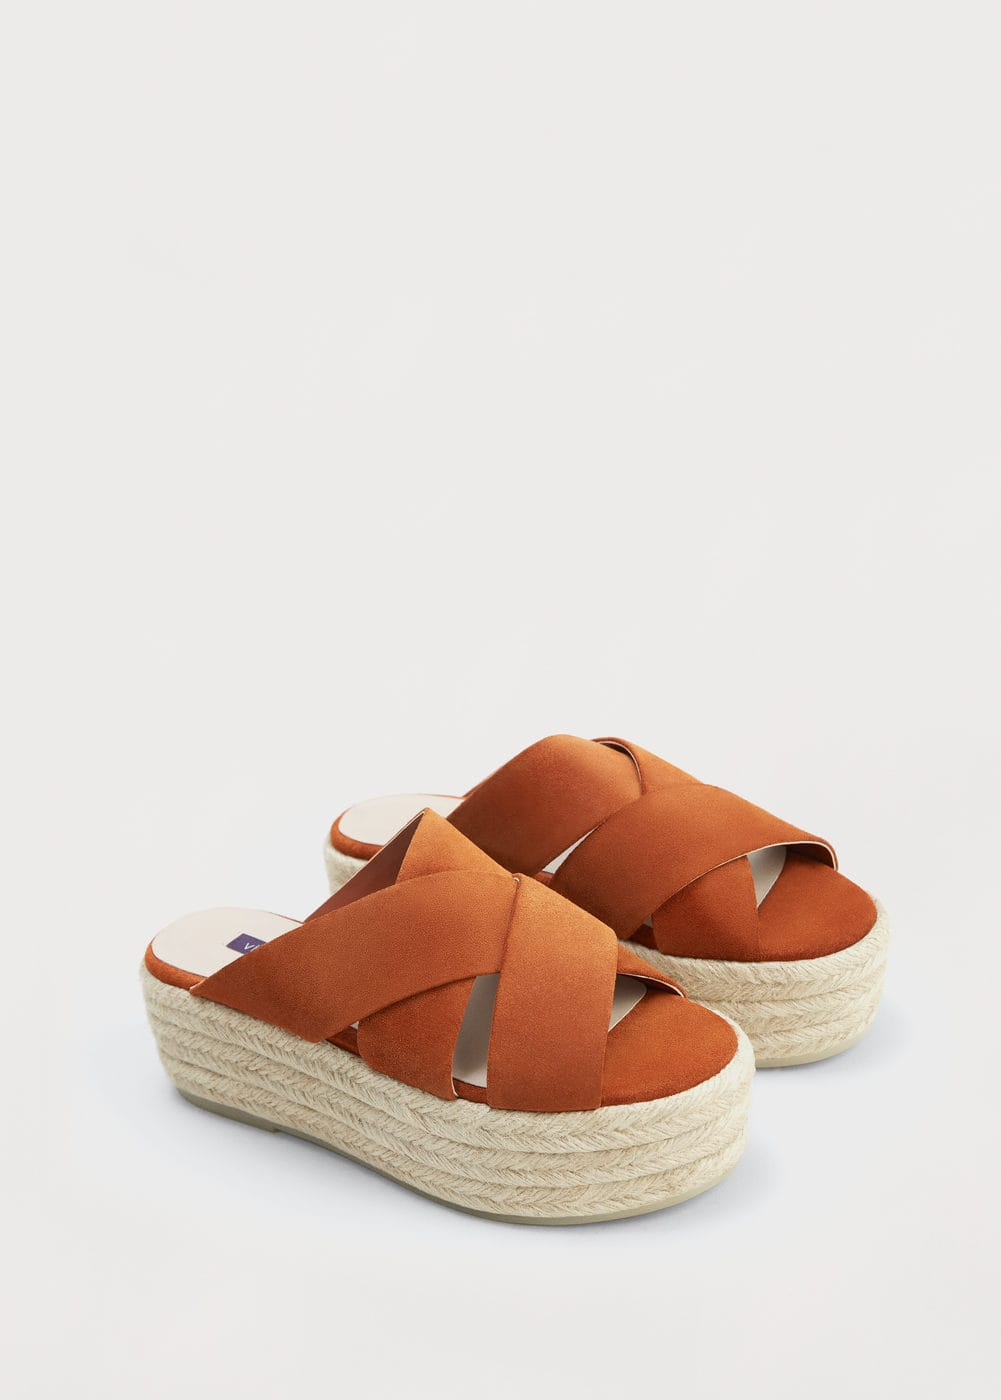 Platform leather sandals | VIOLETA BY MANGO